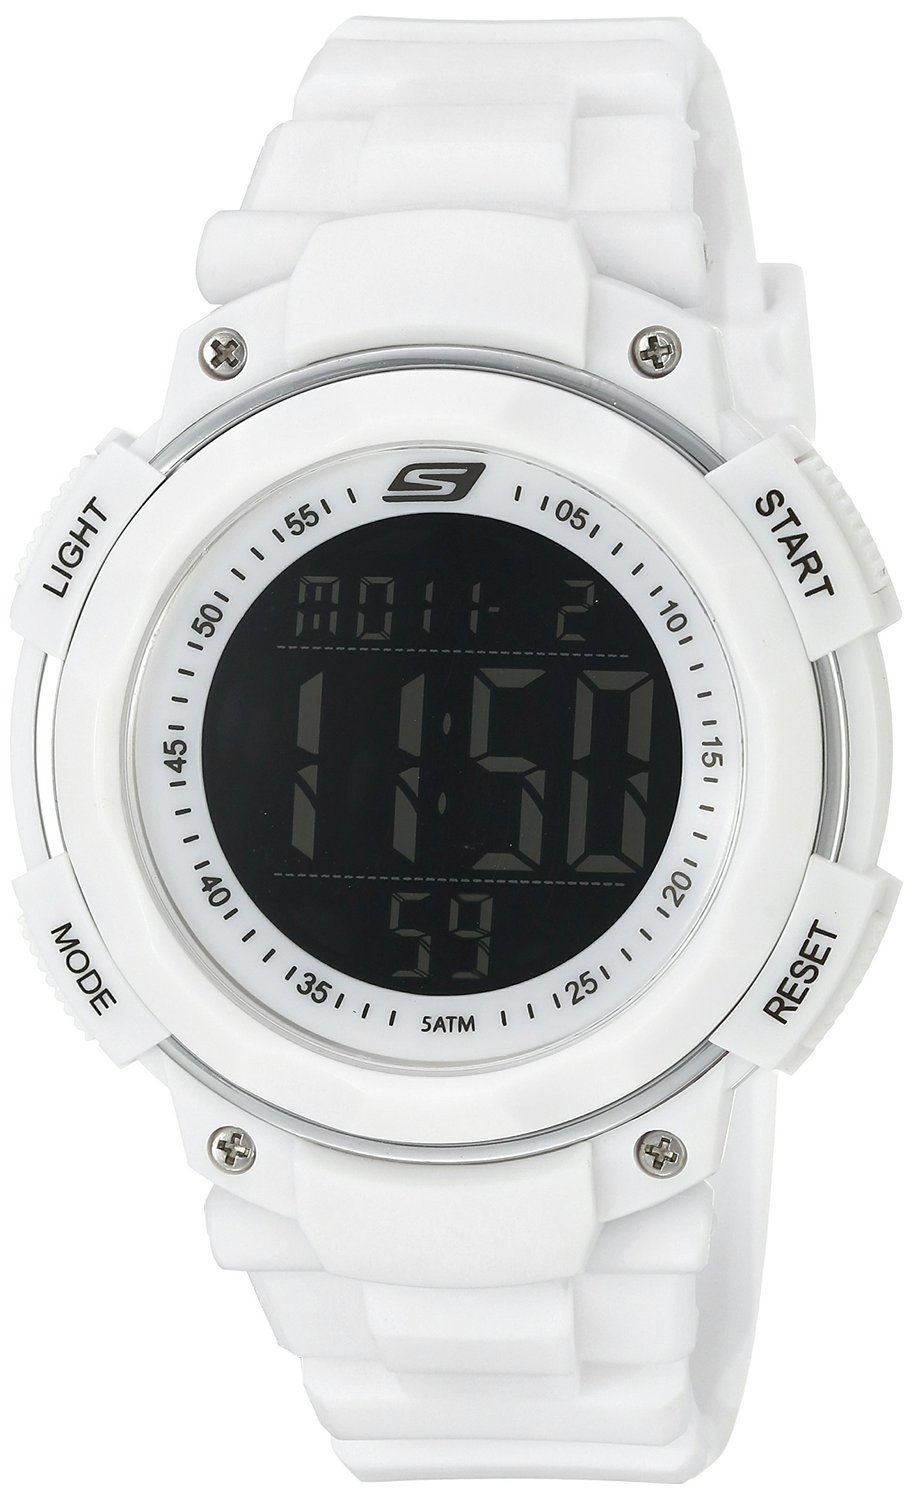 8b0b7b7a55f7 Get Quotations · Skechers Men s SR1020 Digital Display Quartz White Watch